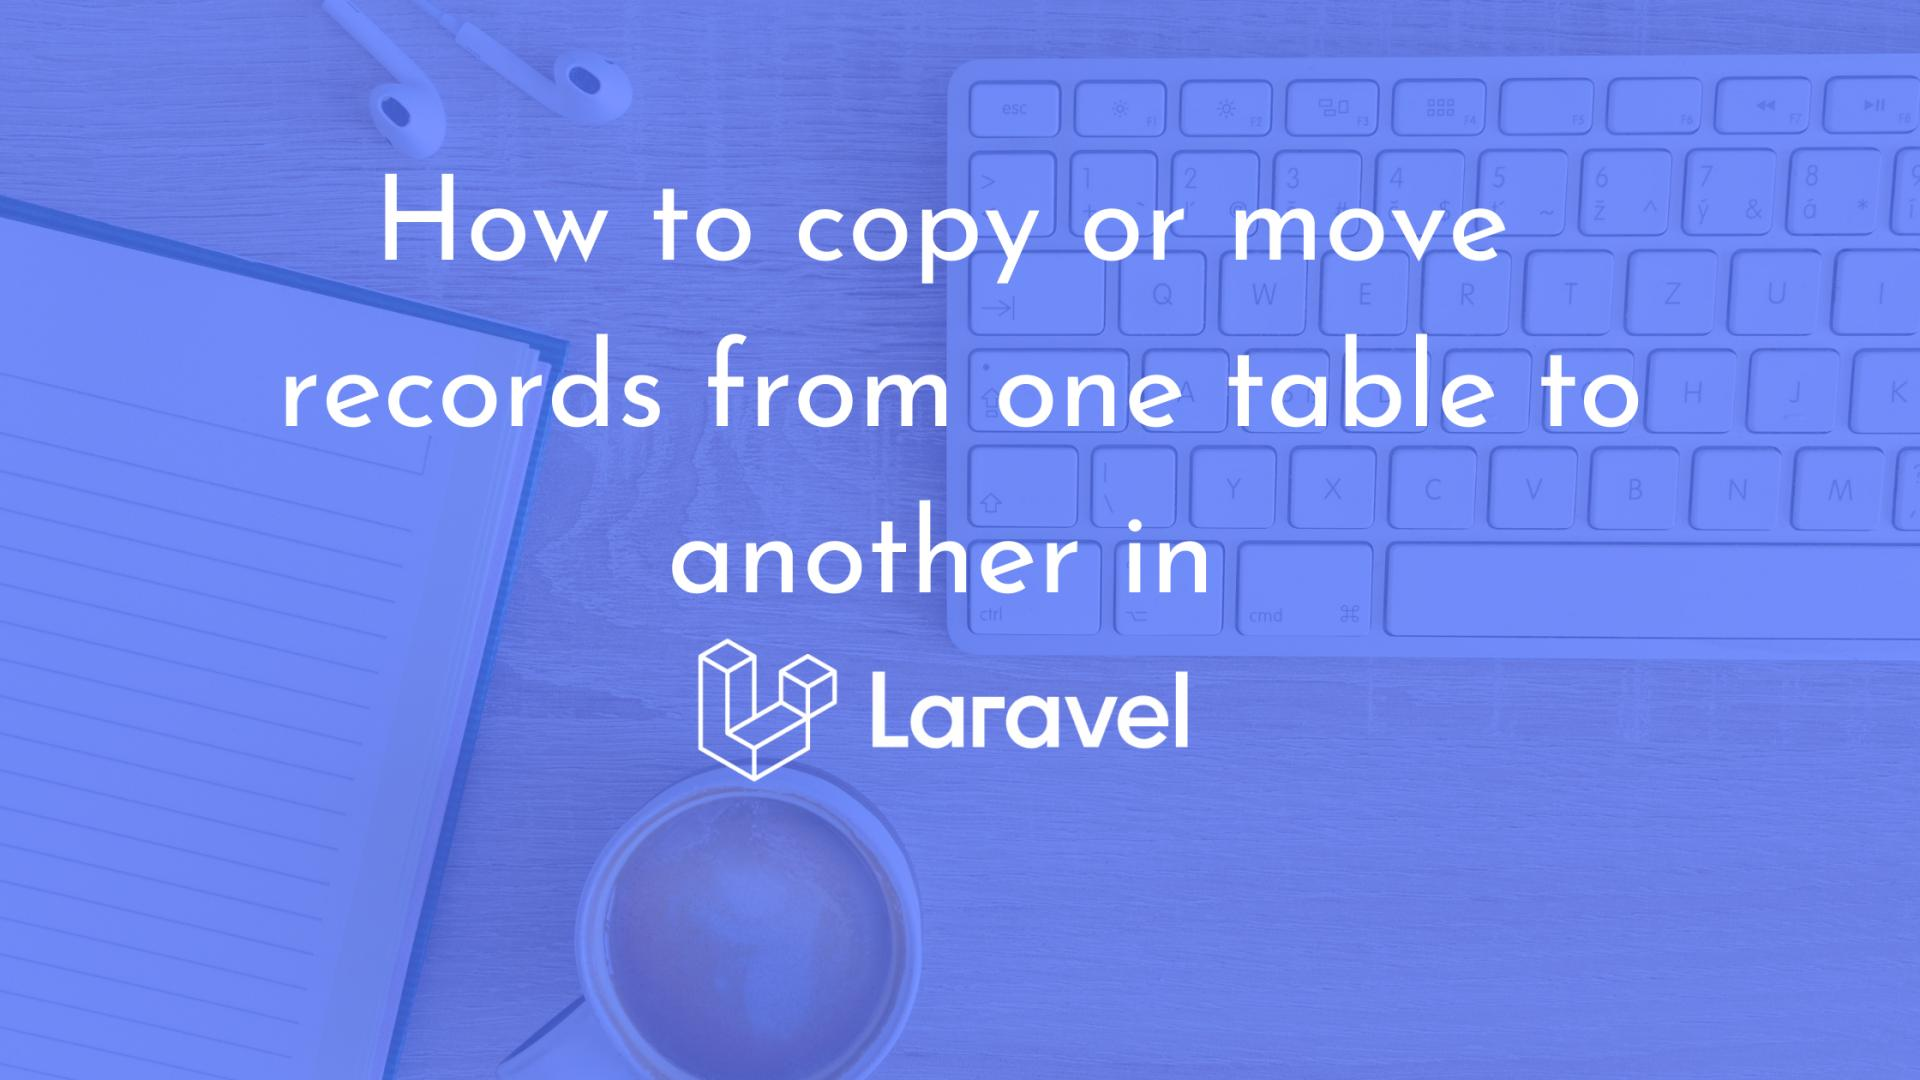 How to copy or move records from one table to another in Laravel?